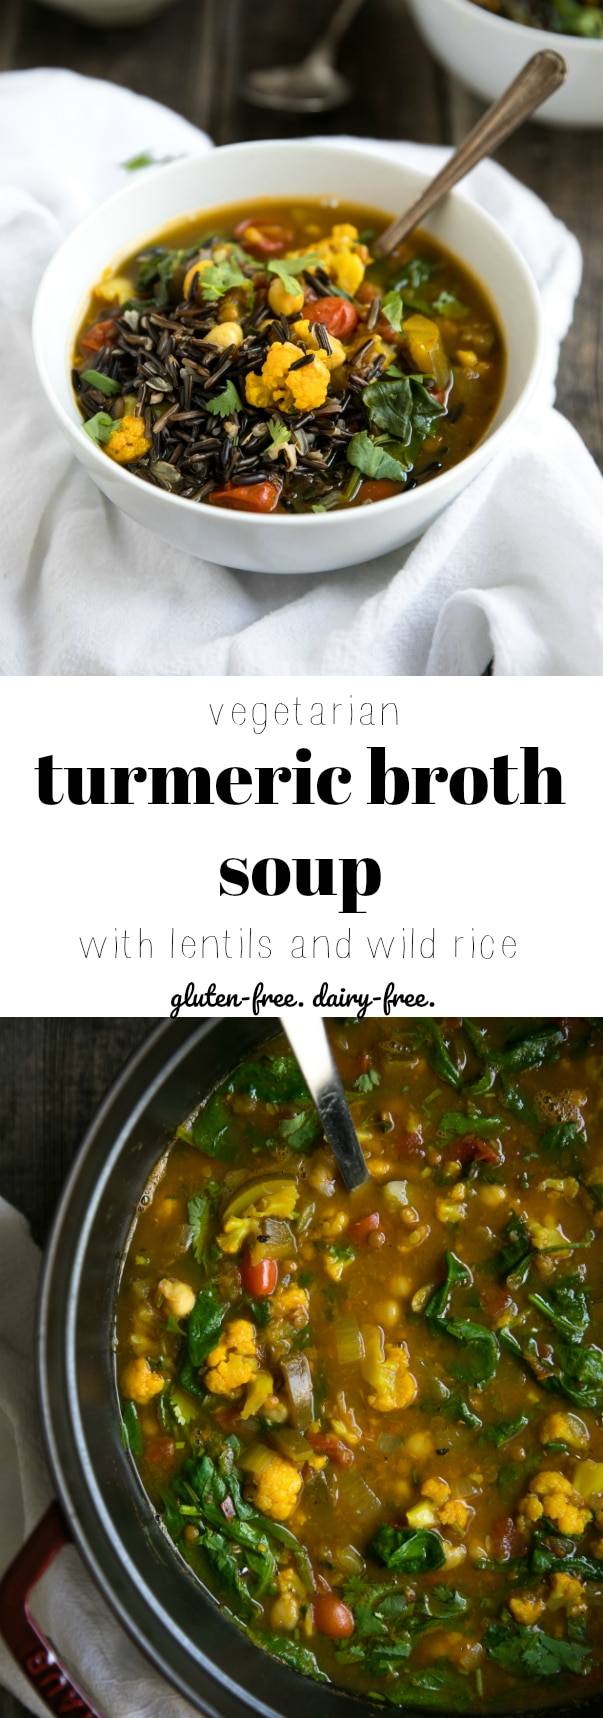 Easy Turmeric Broth Soup with Wild Rice and Vegetables via @theforkedspoon #soup #vegetarian #dairyfree #glutenfree #healthy #cauliflower #turmeric #rice #lentils